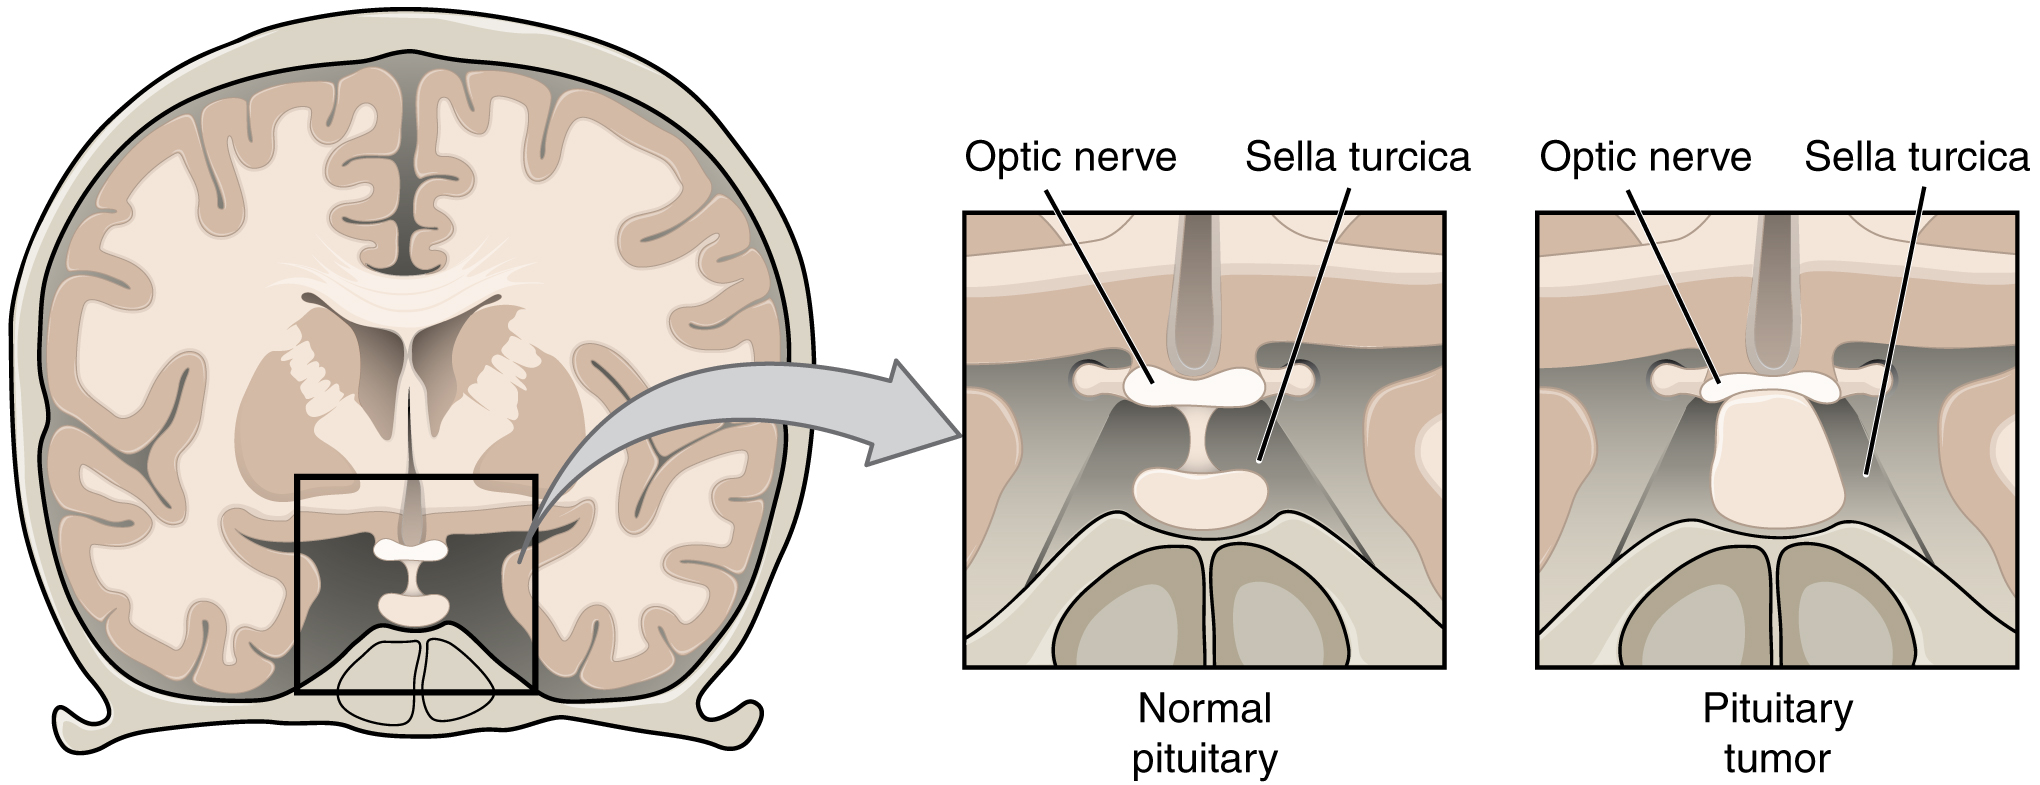 The left panel of this figure shows the top view of the brain. The center panel shows the magnified view of a normal pituitary, and the right panel shows a pituitary tumor.